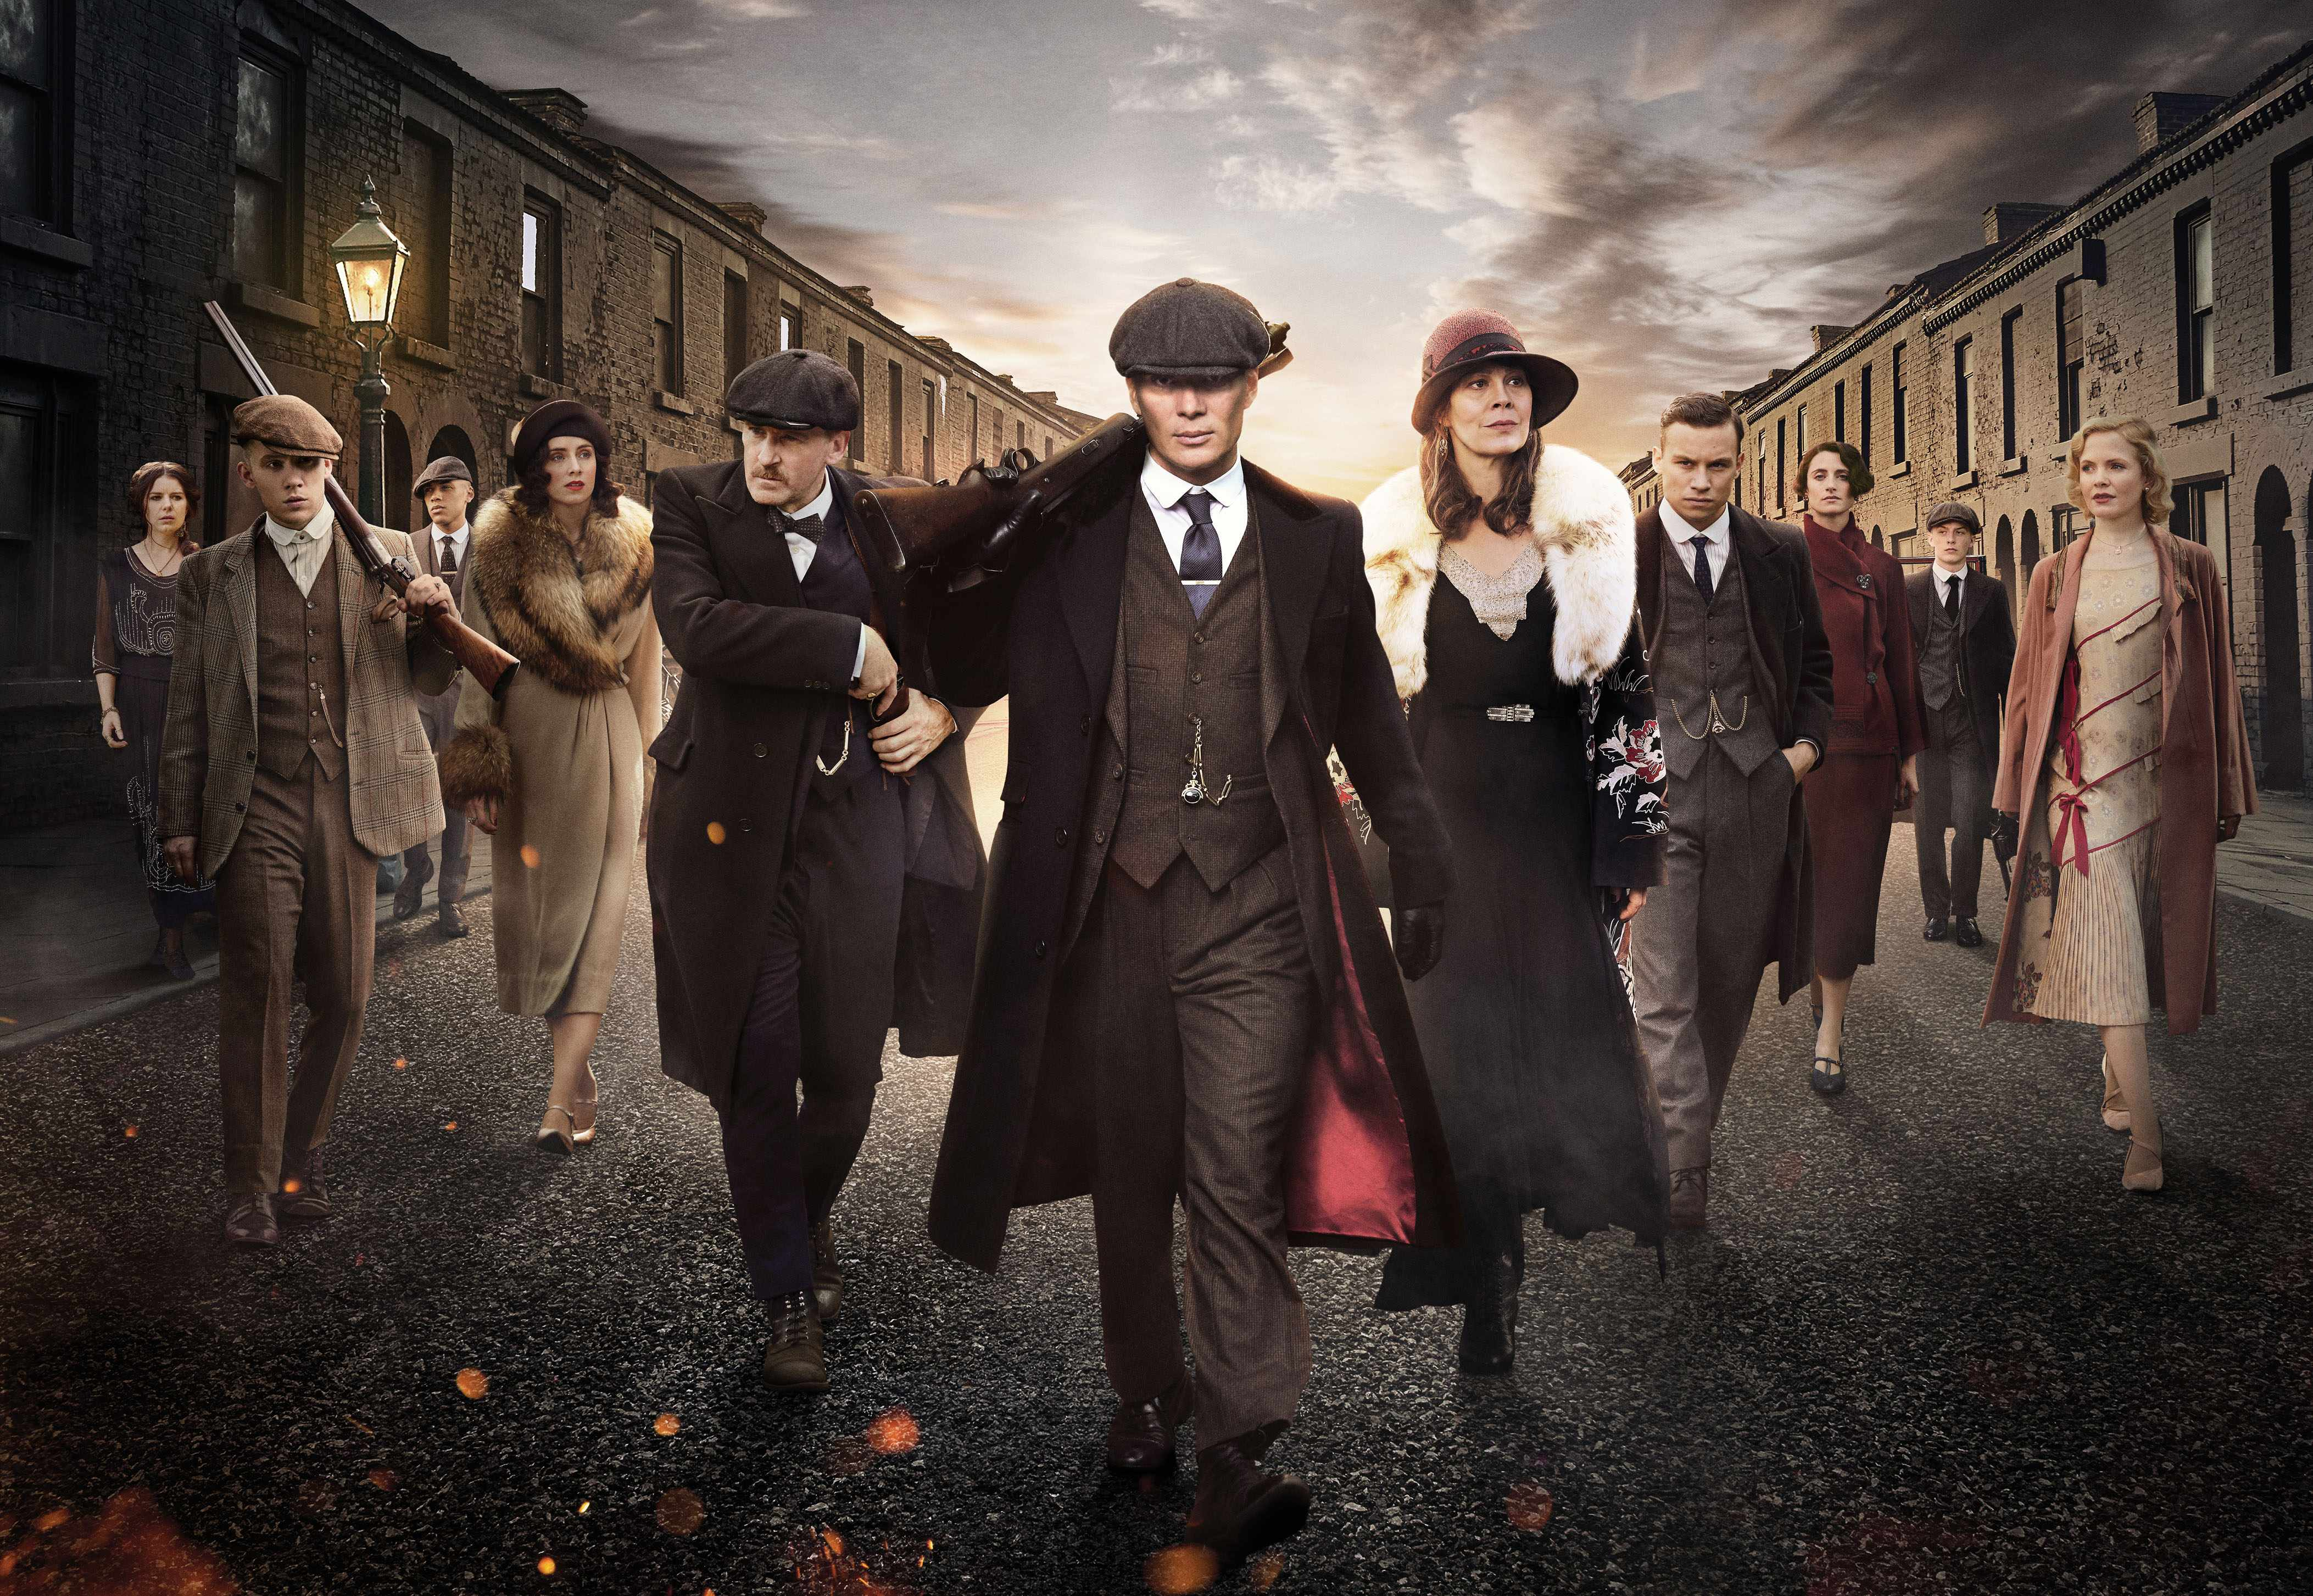 Programme Name: Peaky Blinders IV - TX: n/a - Episode: n/a (No. n/a) - Picture Shows: Aimee-Ffion Edwards (Esme Shelby), Joe Cole (John Shelby), Jordan Bolger (Isiah), Sophie Rundle (Ada Shelby), Paul Anderson (Arthur Shelby), Cillian Murphy (Tommy Shelby), Helen McCrory (Polly Gray), Finn Cole (Michael Gray), Natasha O'Keeffe (Lizzie Stark), Harry Kirton (Finn Shelby), Kate Phillips (Linda Shelby) in series four of Peaky Blinders, coming soon to BBC Two  Photographer: Robert Viglasky | © Caryn Mandabach Productions Ltd 2017  Production credit: A Caryn Mandabach and Tiger Aspect Production  - (C) © Caryn Mandabach Productions Ltd 2017 - Photographer: Robert Viglasky  (BBC, TL)